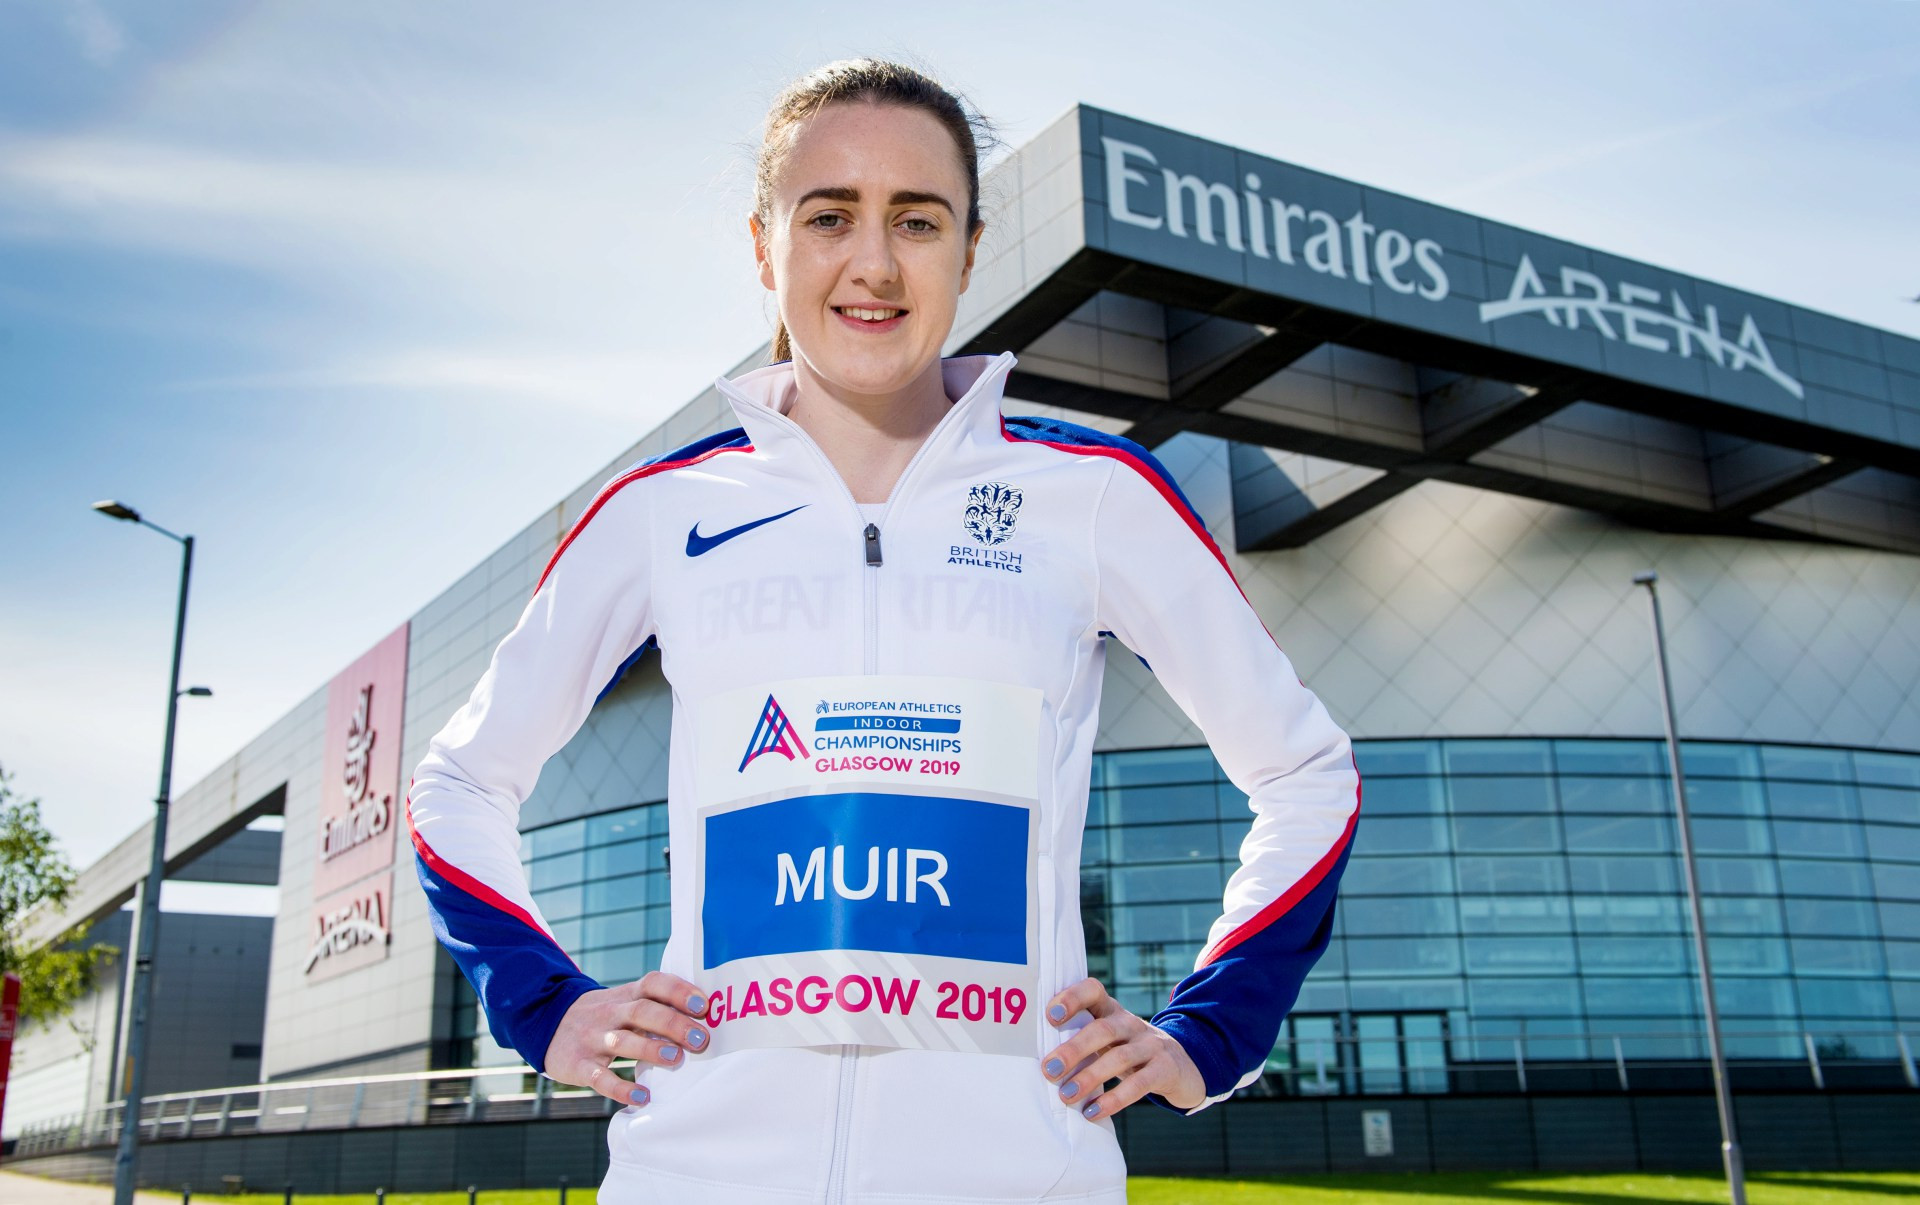 Scottish middle-distance runner Laura Muir was recently appointed an ambassador of the event ©Glasgow 2019